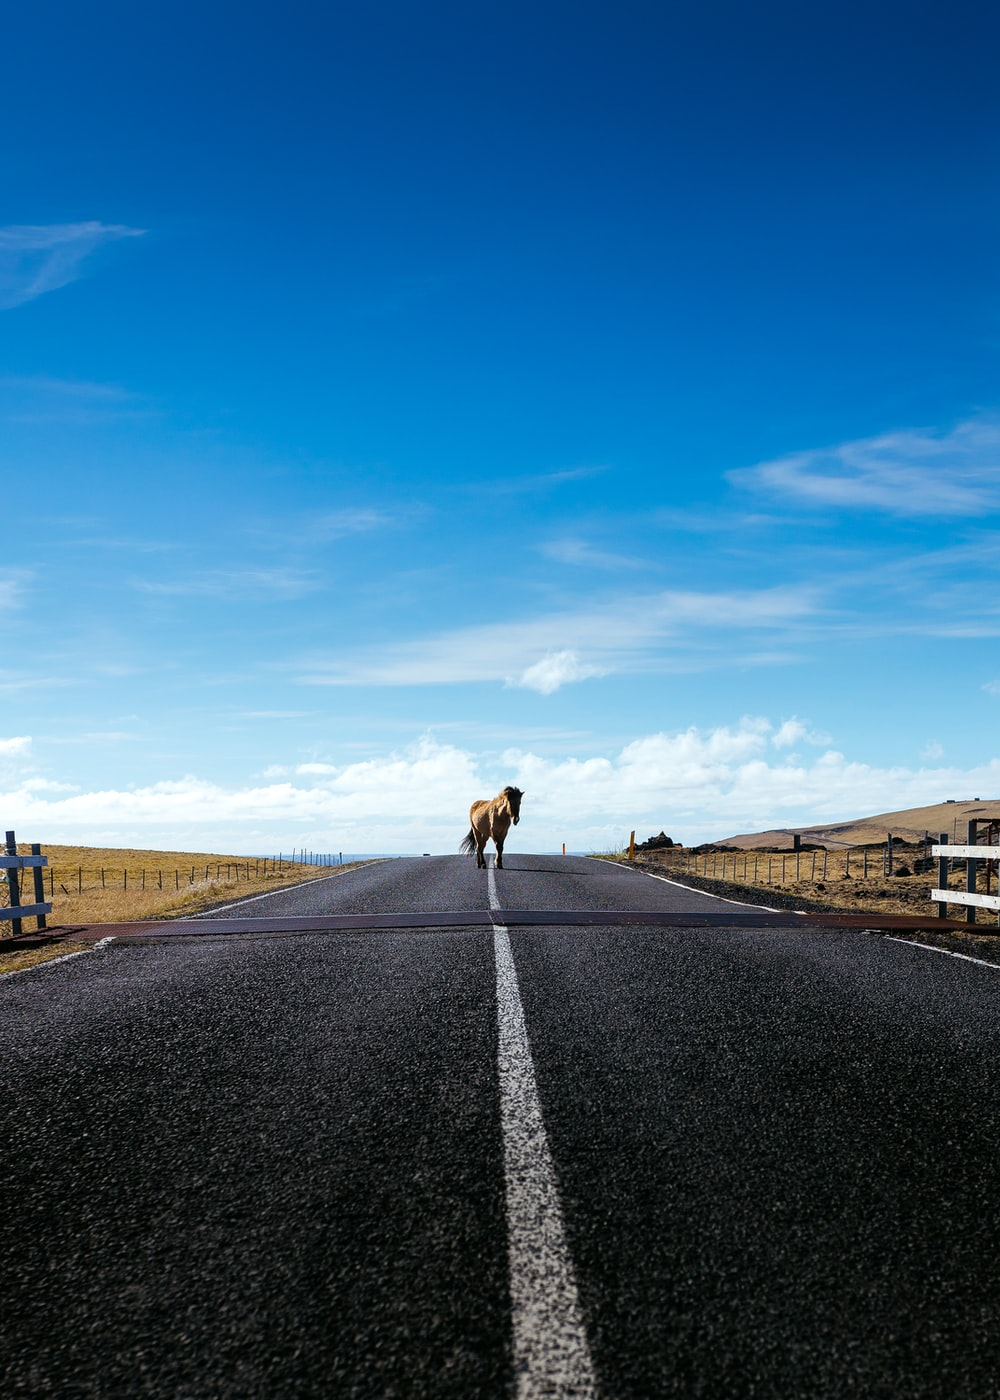 A horse walking down a tarmac road on a bright day